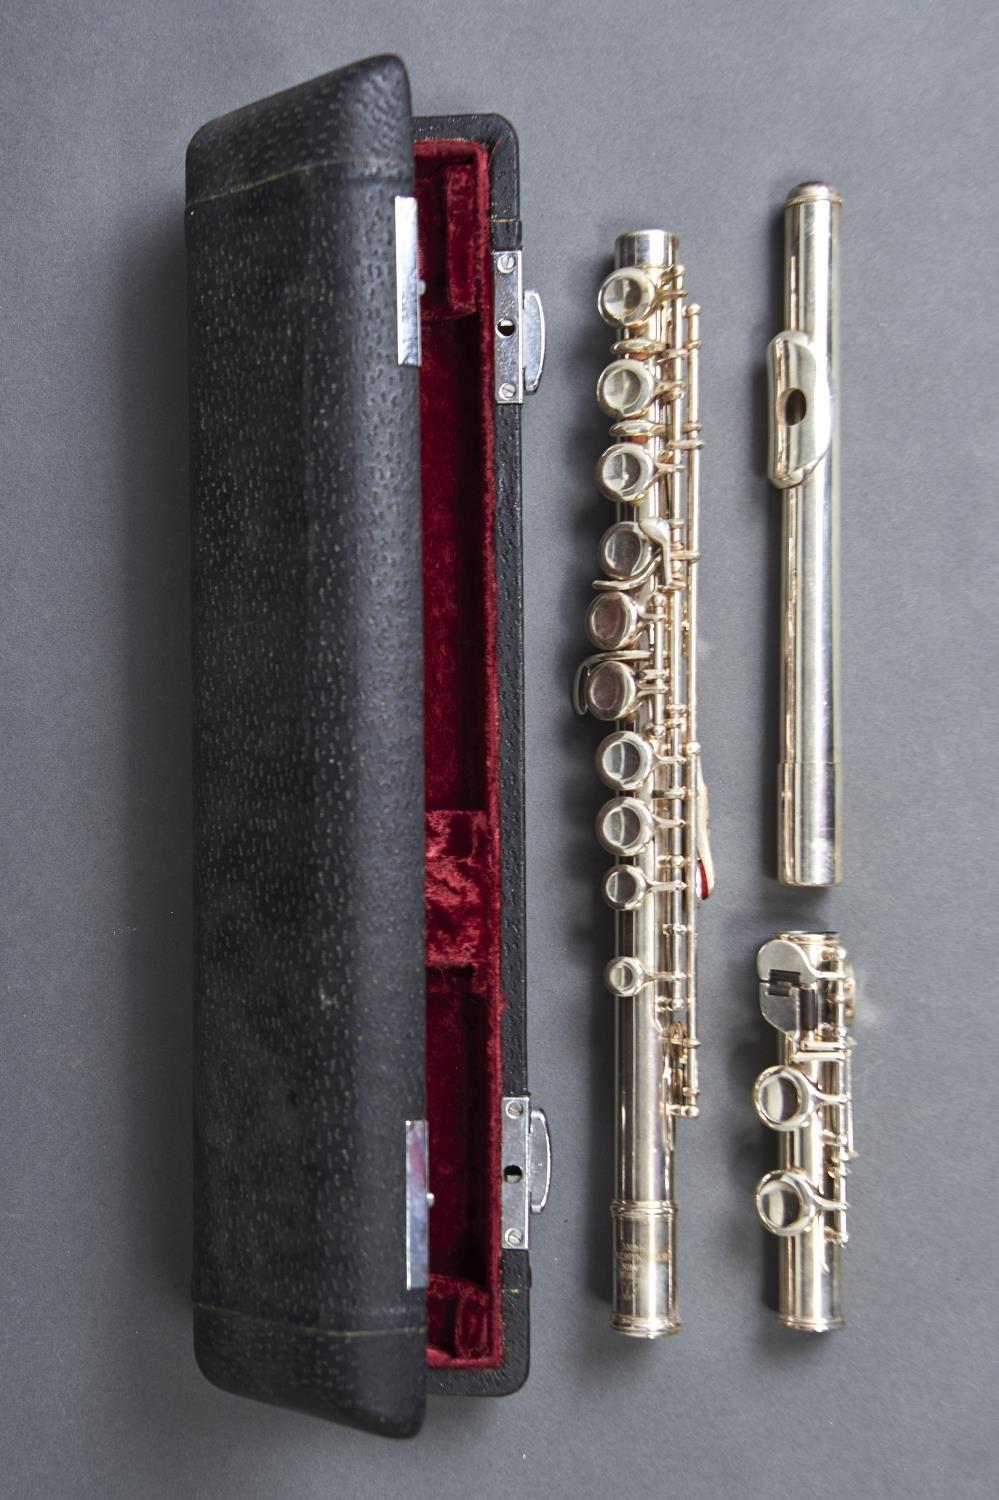 A CHINESE SILVER PLATED FLUTE, LARK, NUMBERED M4006, 67.5CM L OVERALL, CASED Wear consistent